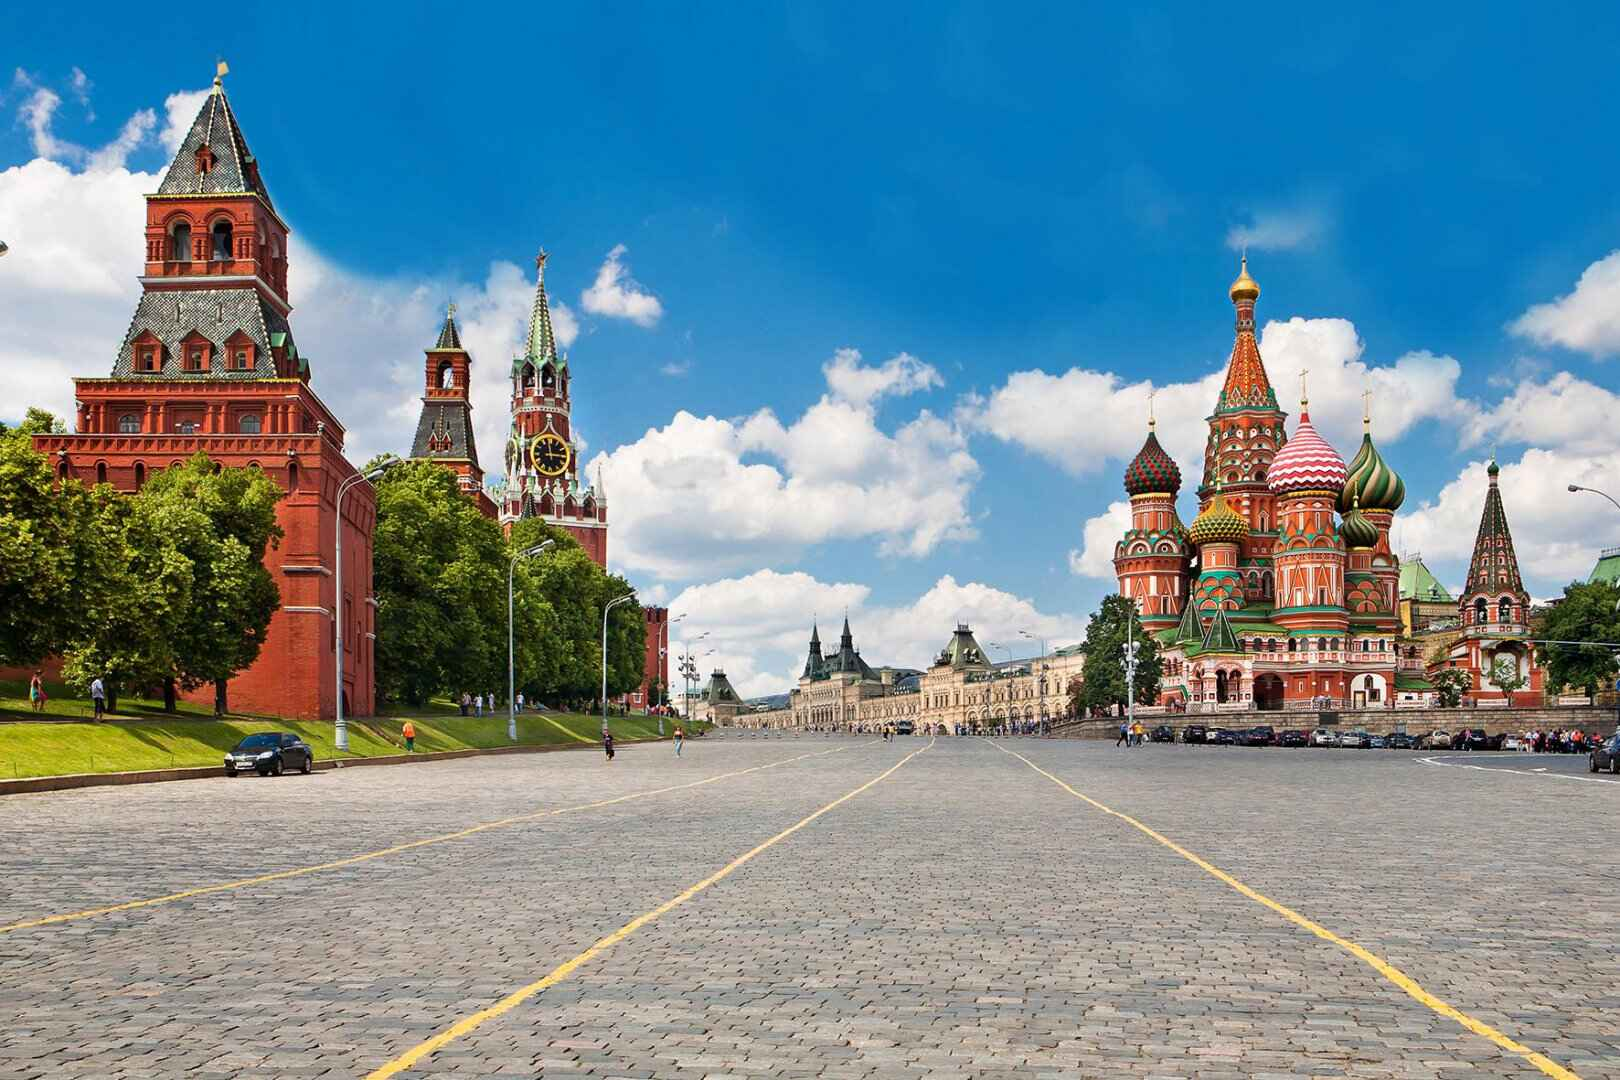 : The Moscow Kremlin - tickets to the Moscow Kremlin towers buy price visit schedule, Фото 12